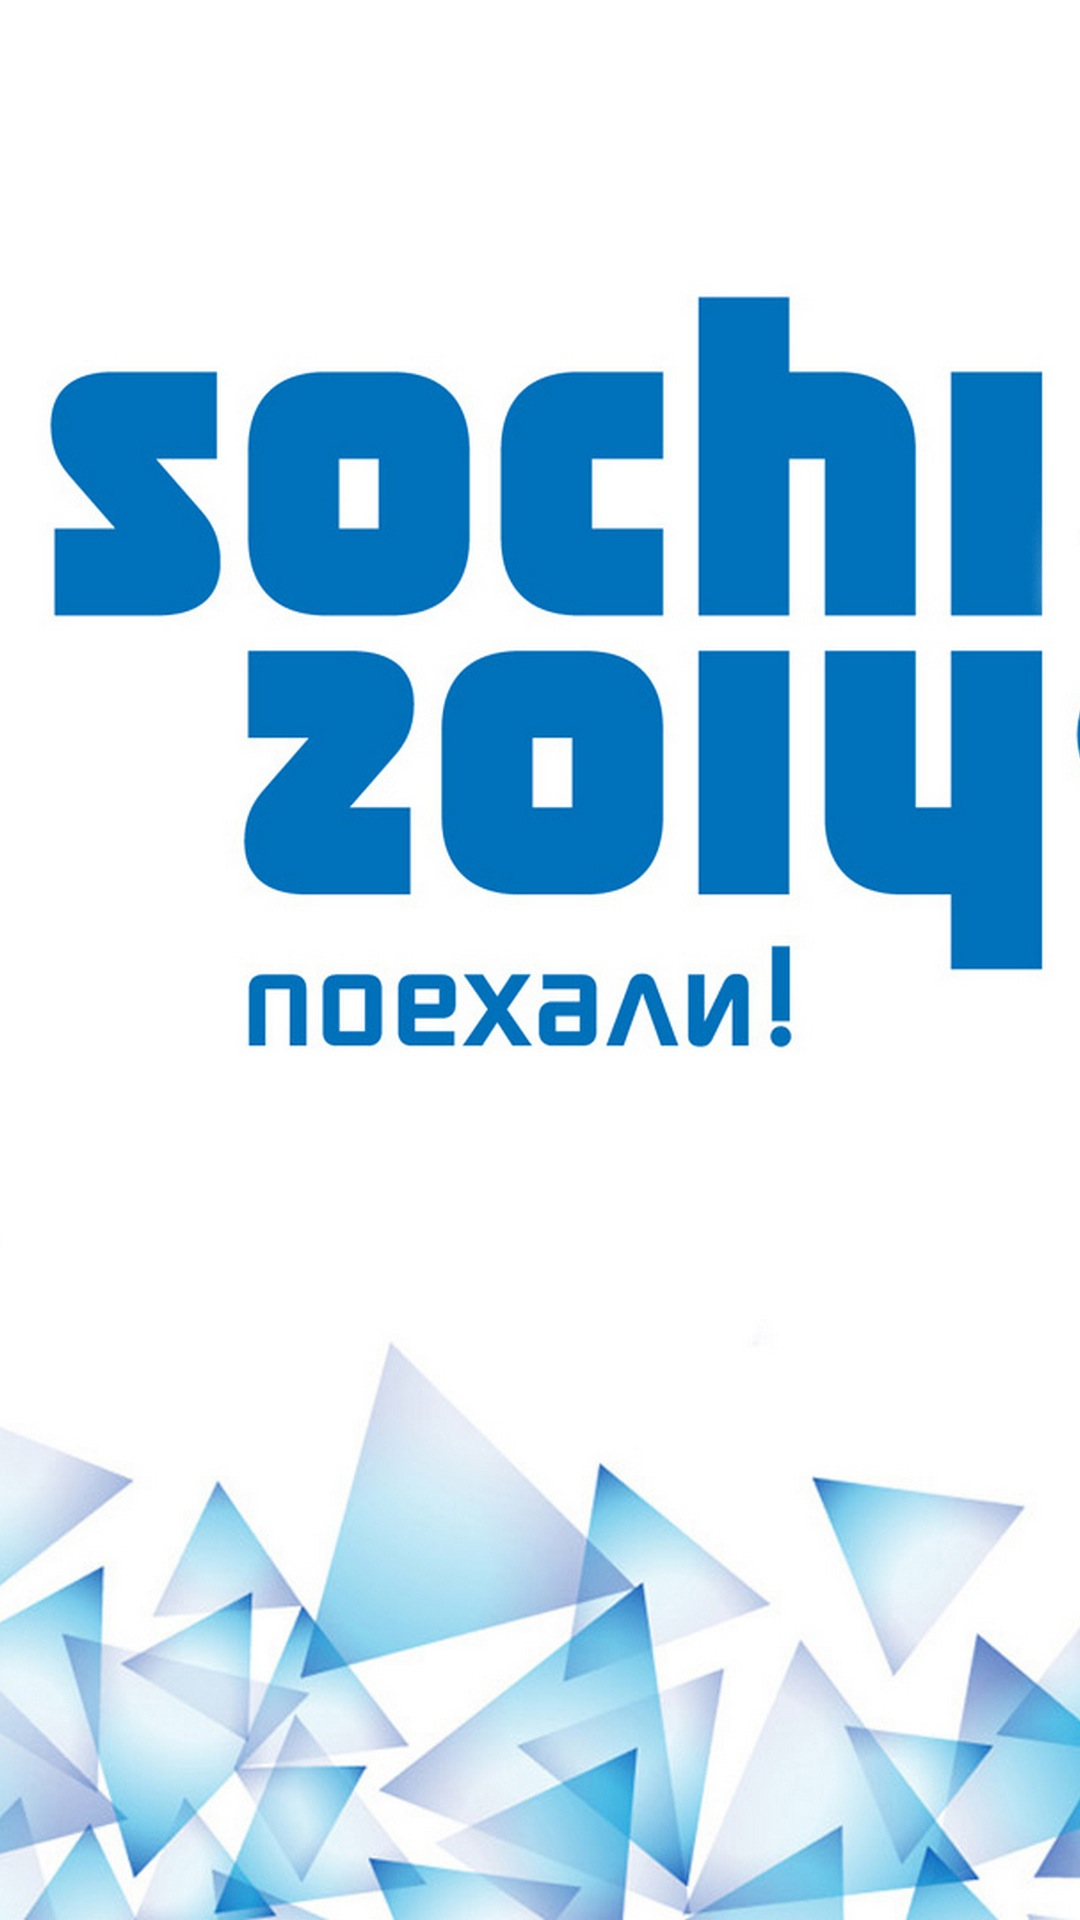 games, Sochi 2014, Poehali, Logo, S4 Wallpaper, Full Size, 1080x1920